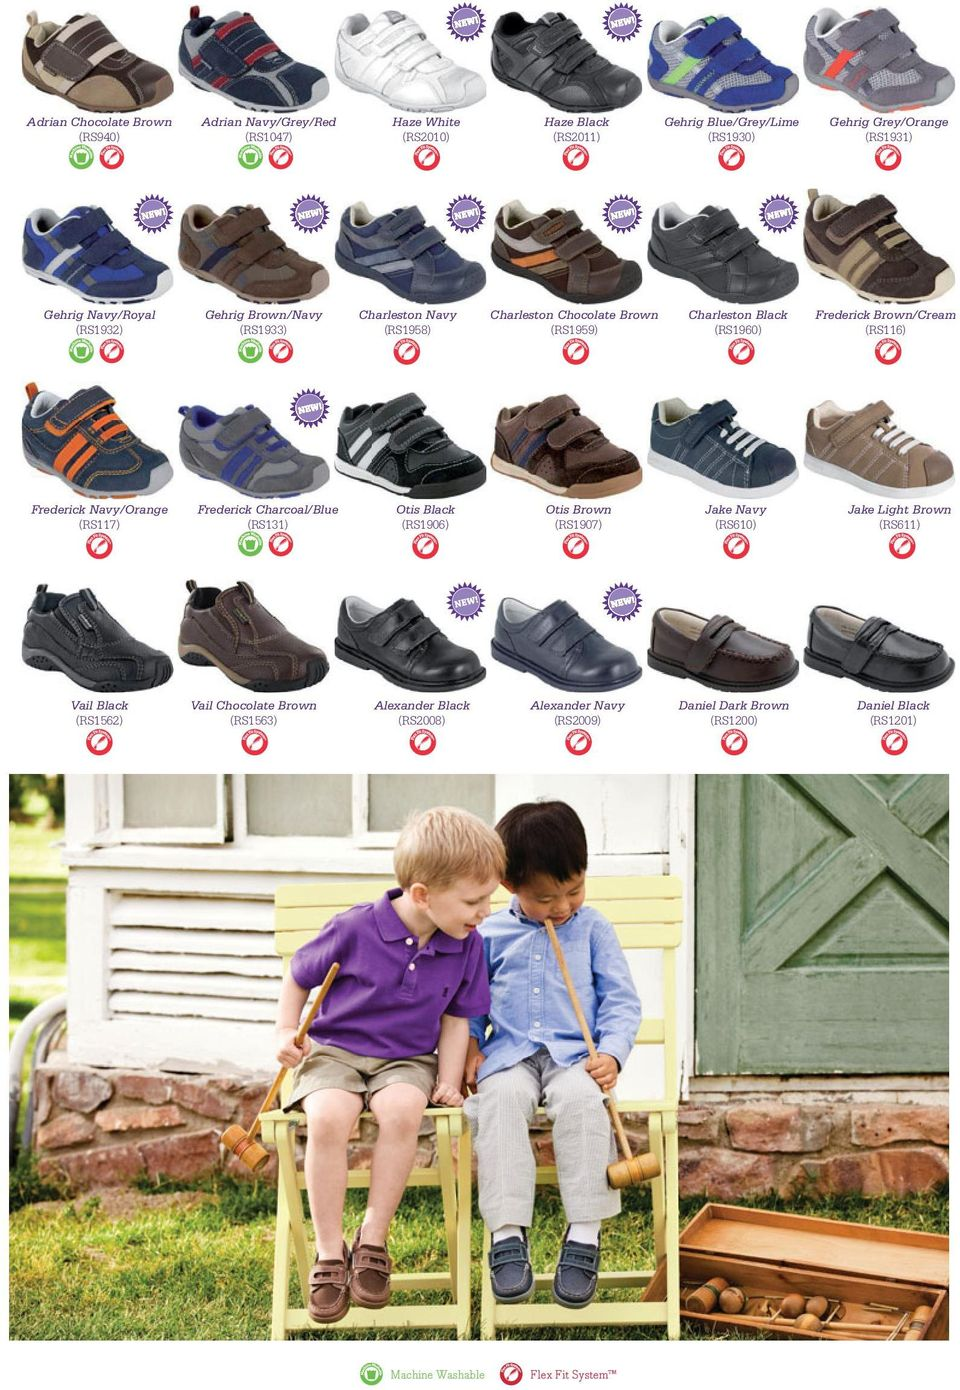 (RS116) Frederick Navy/Orange (RS117) Frederick Charcoal/Blue (RS131) Otis Black (RS1906) Otis Brown (RS1907) Jake Navy (RS610) Jake Light Brown (RS611) Vail Black